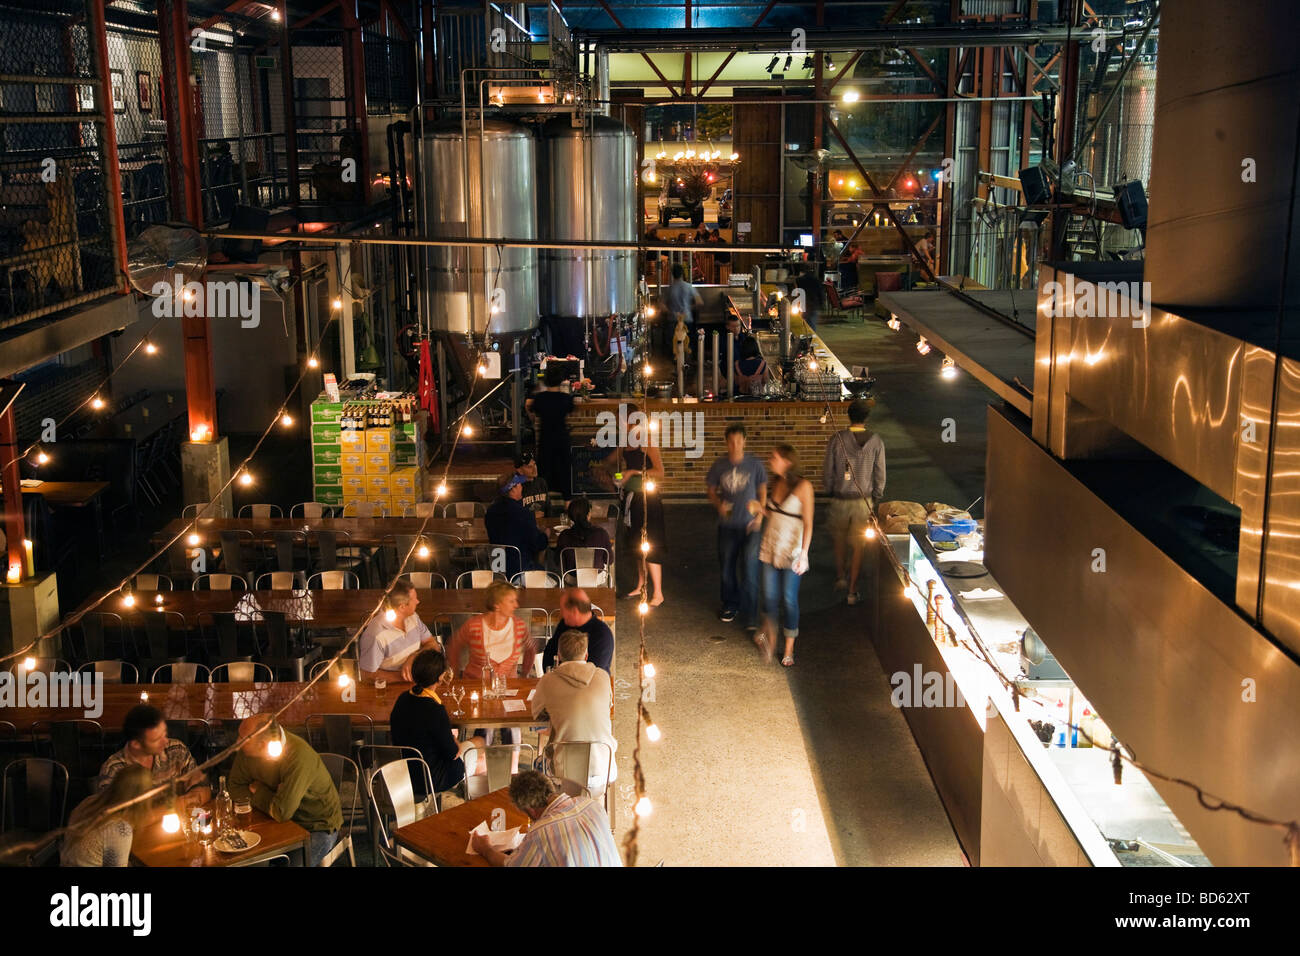 Little Creatures bar restaurant and micro brewery, Fremantle, Perth - Stock Image